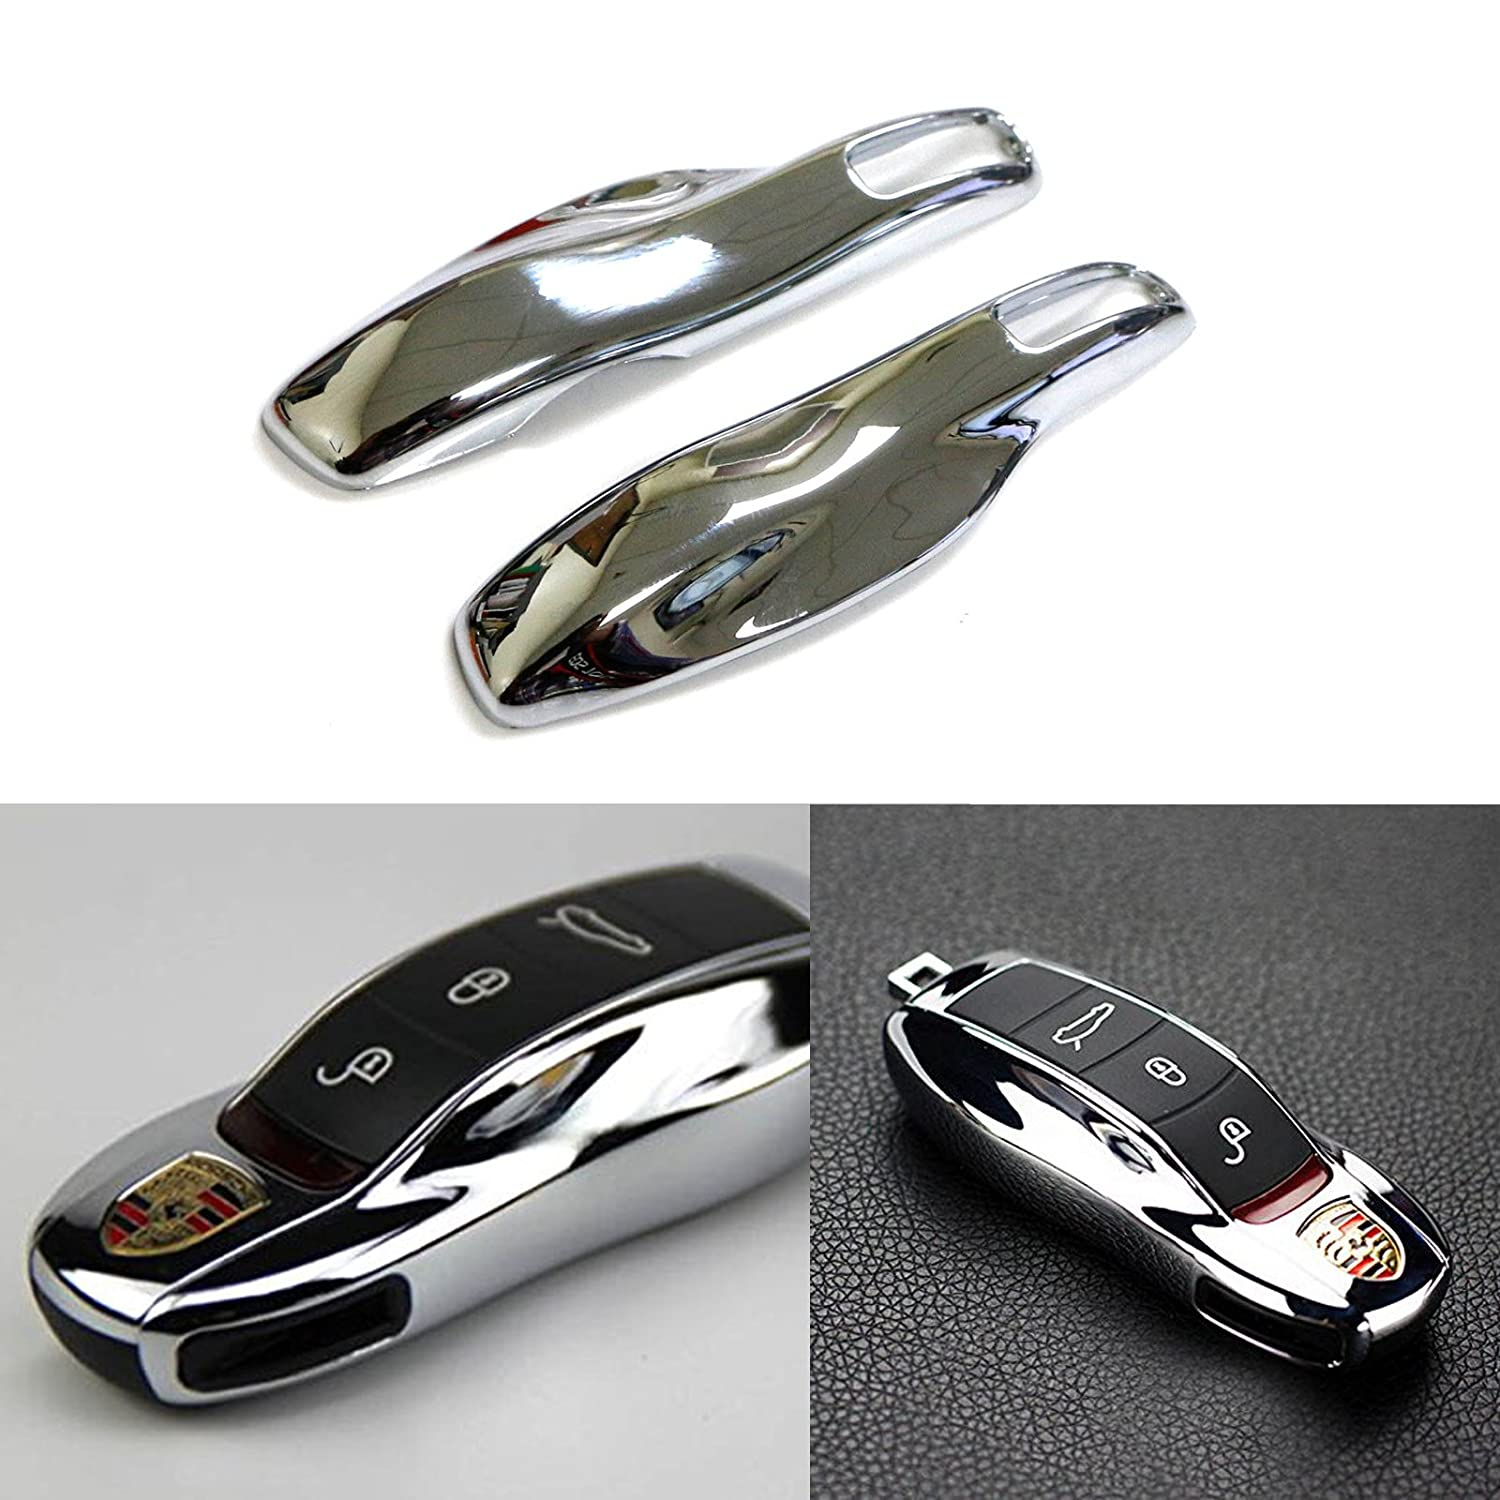 etc Xotic Tech 1x White Smart Remote Key Shell Holder Cover Protector Case Fob for Porsche Cayenne Panamera Macan 911